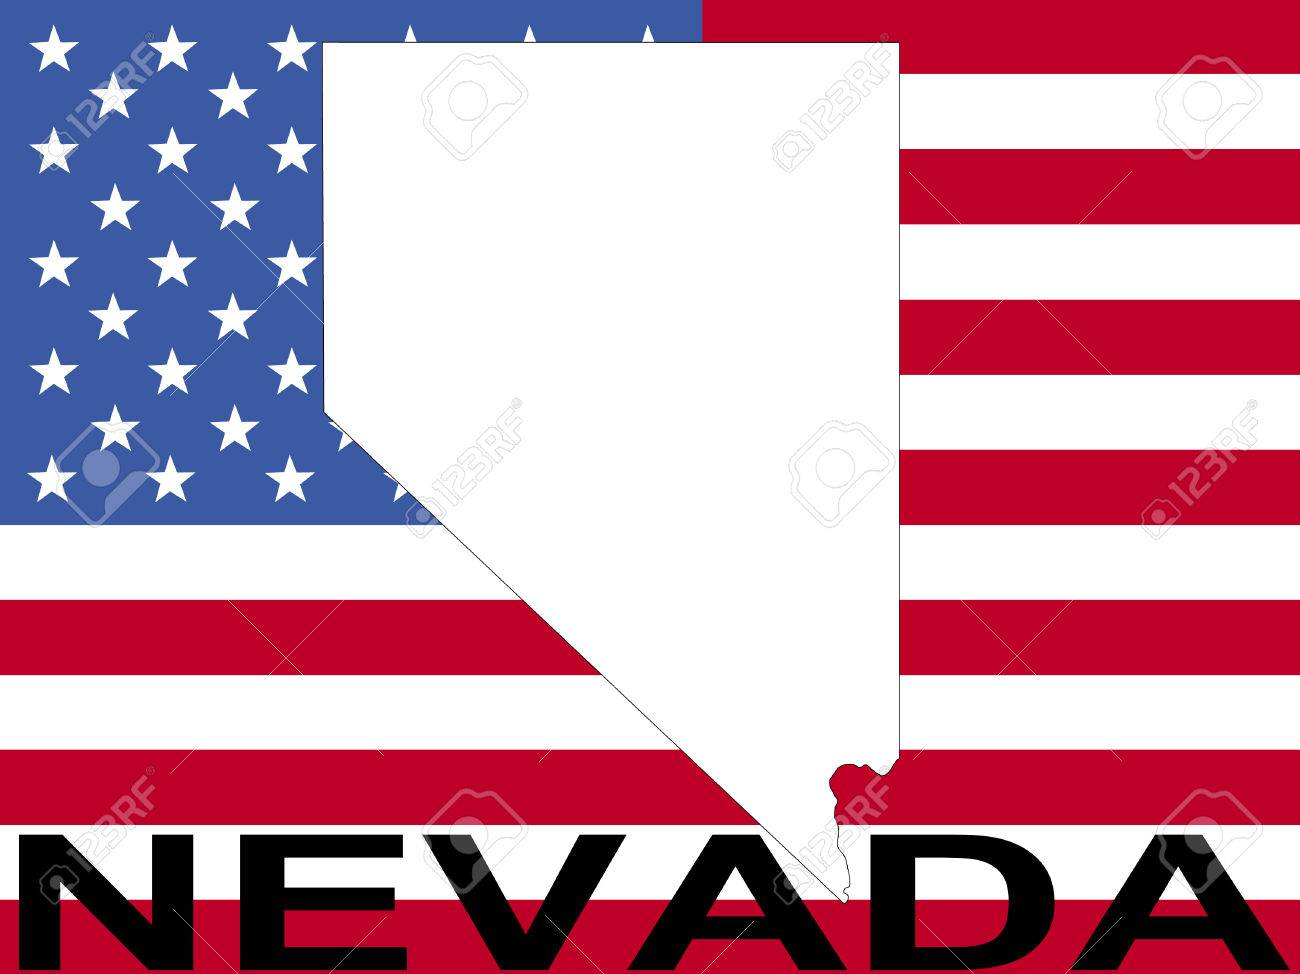 Map Of Nevada On American Flag Illustration Stock Photo Picture - Nevada us map